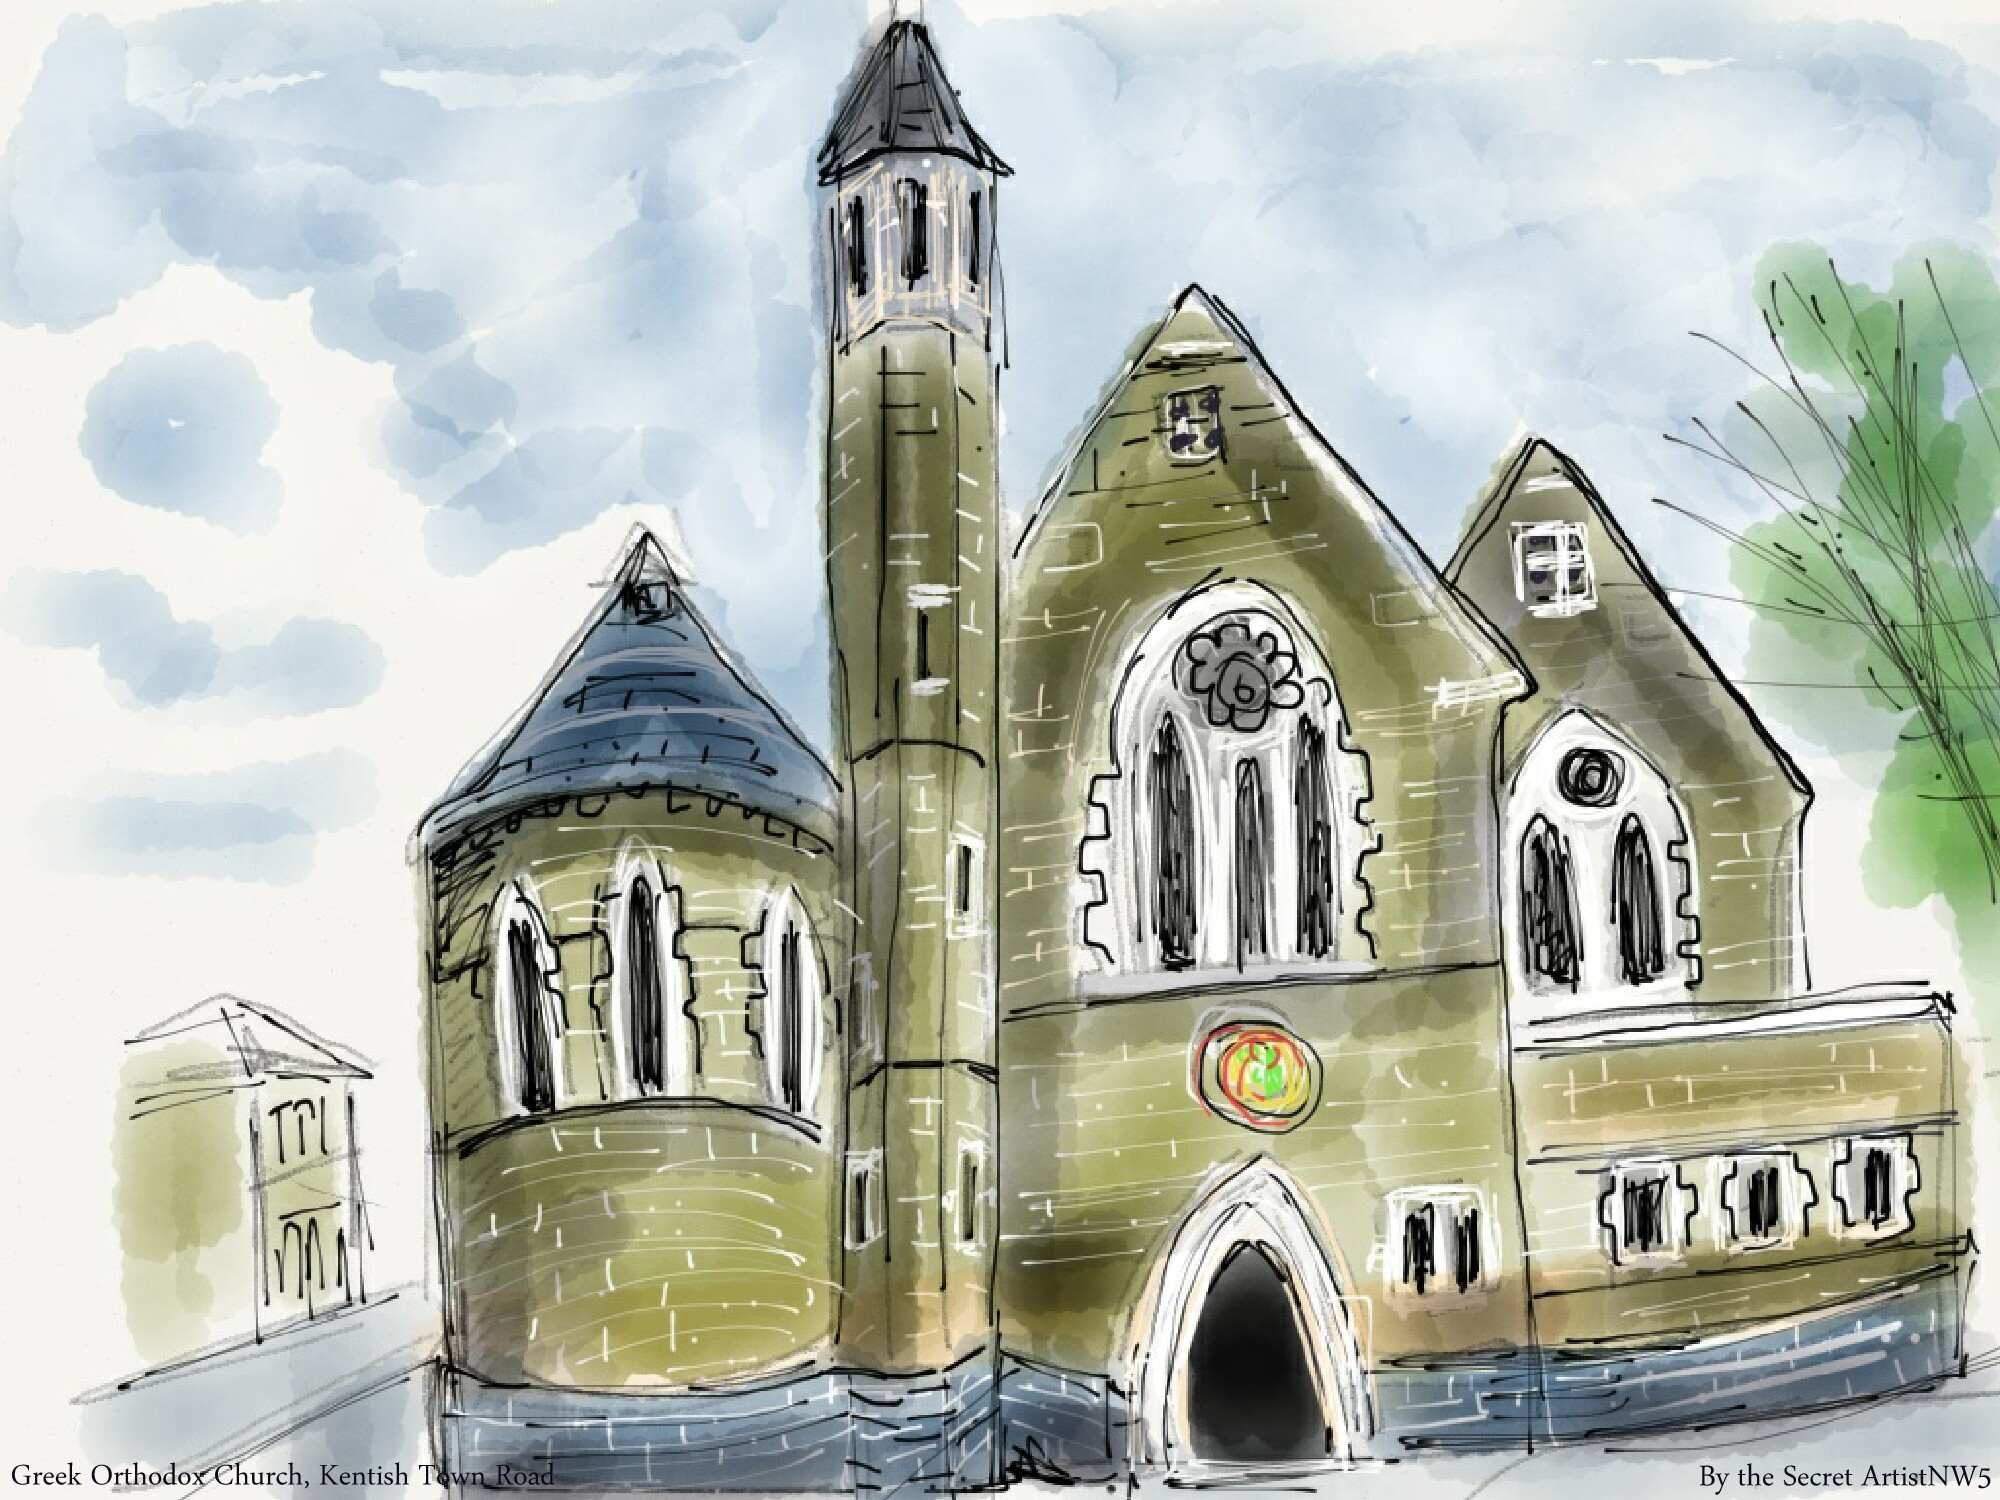 Greek Orthodox Church, Kentish Town